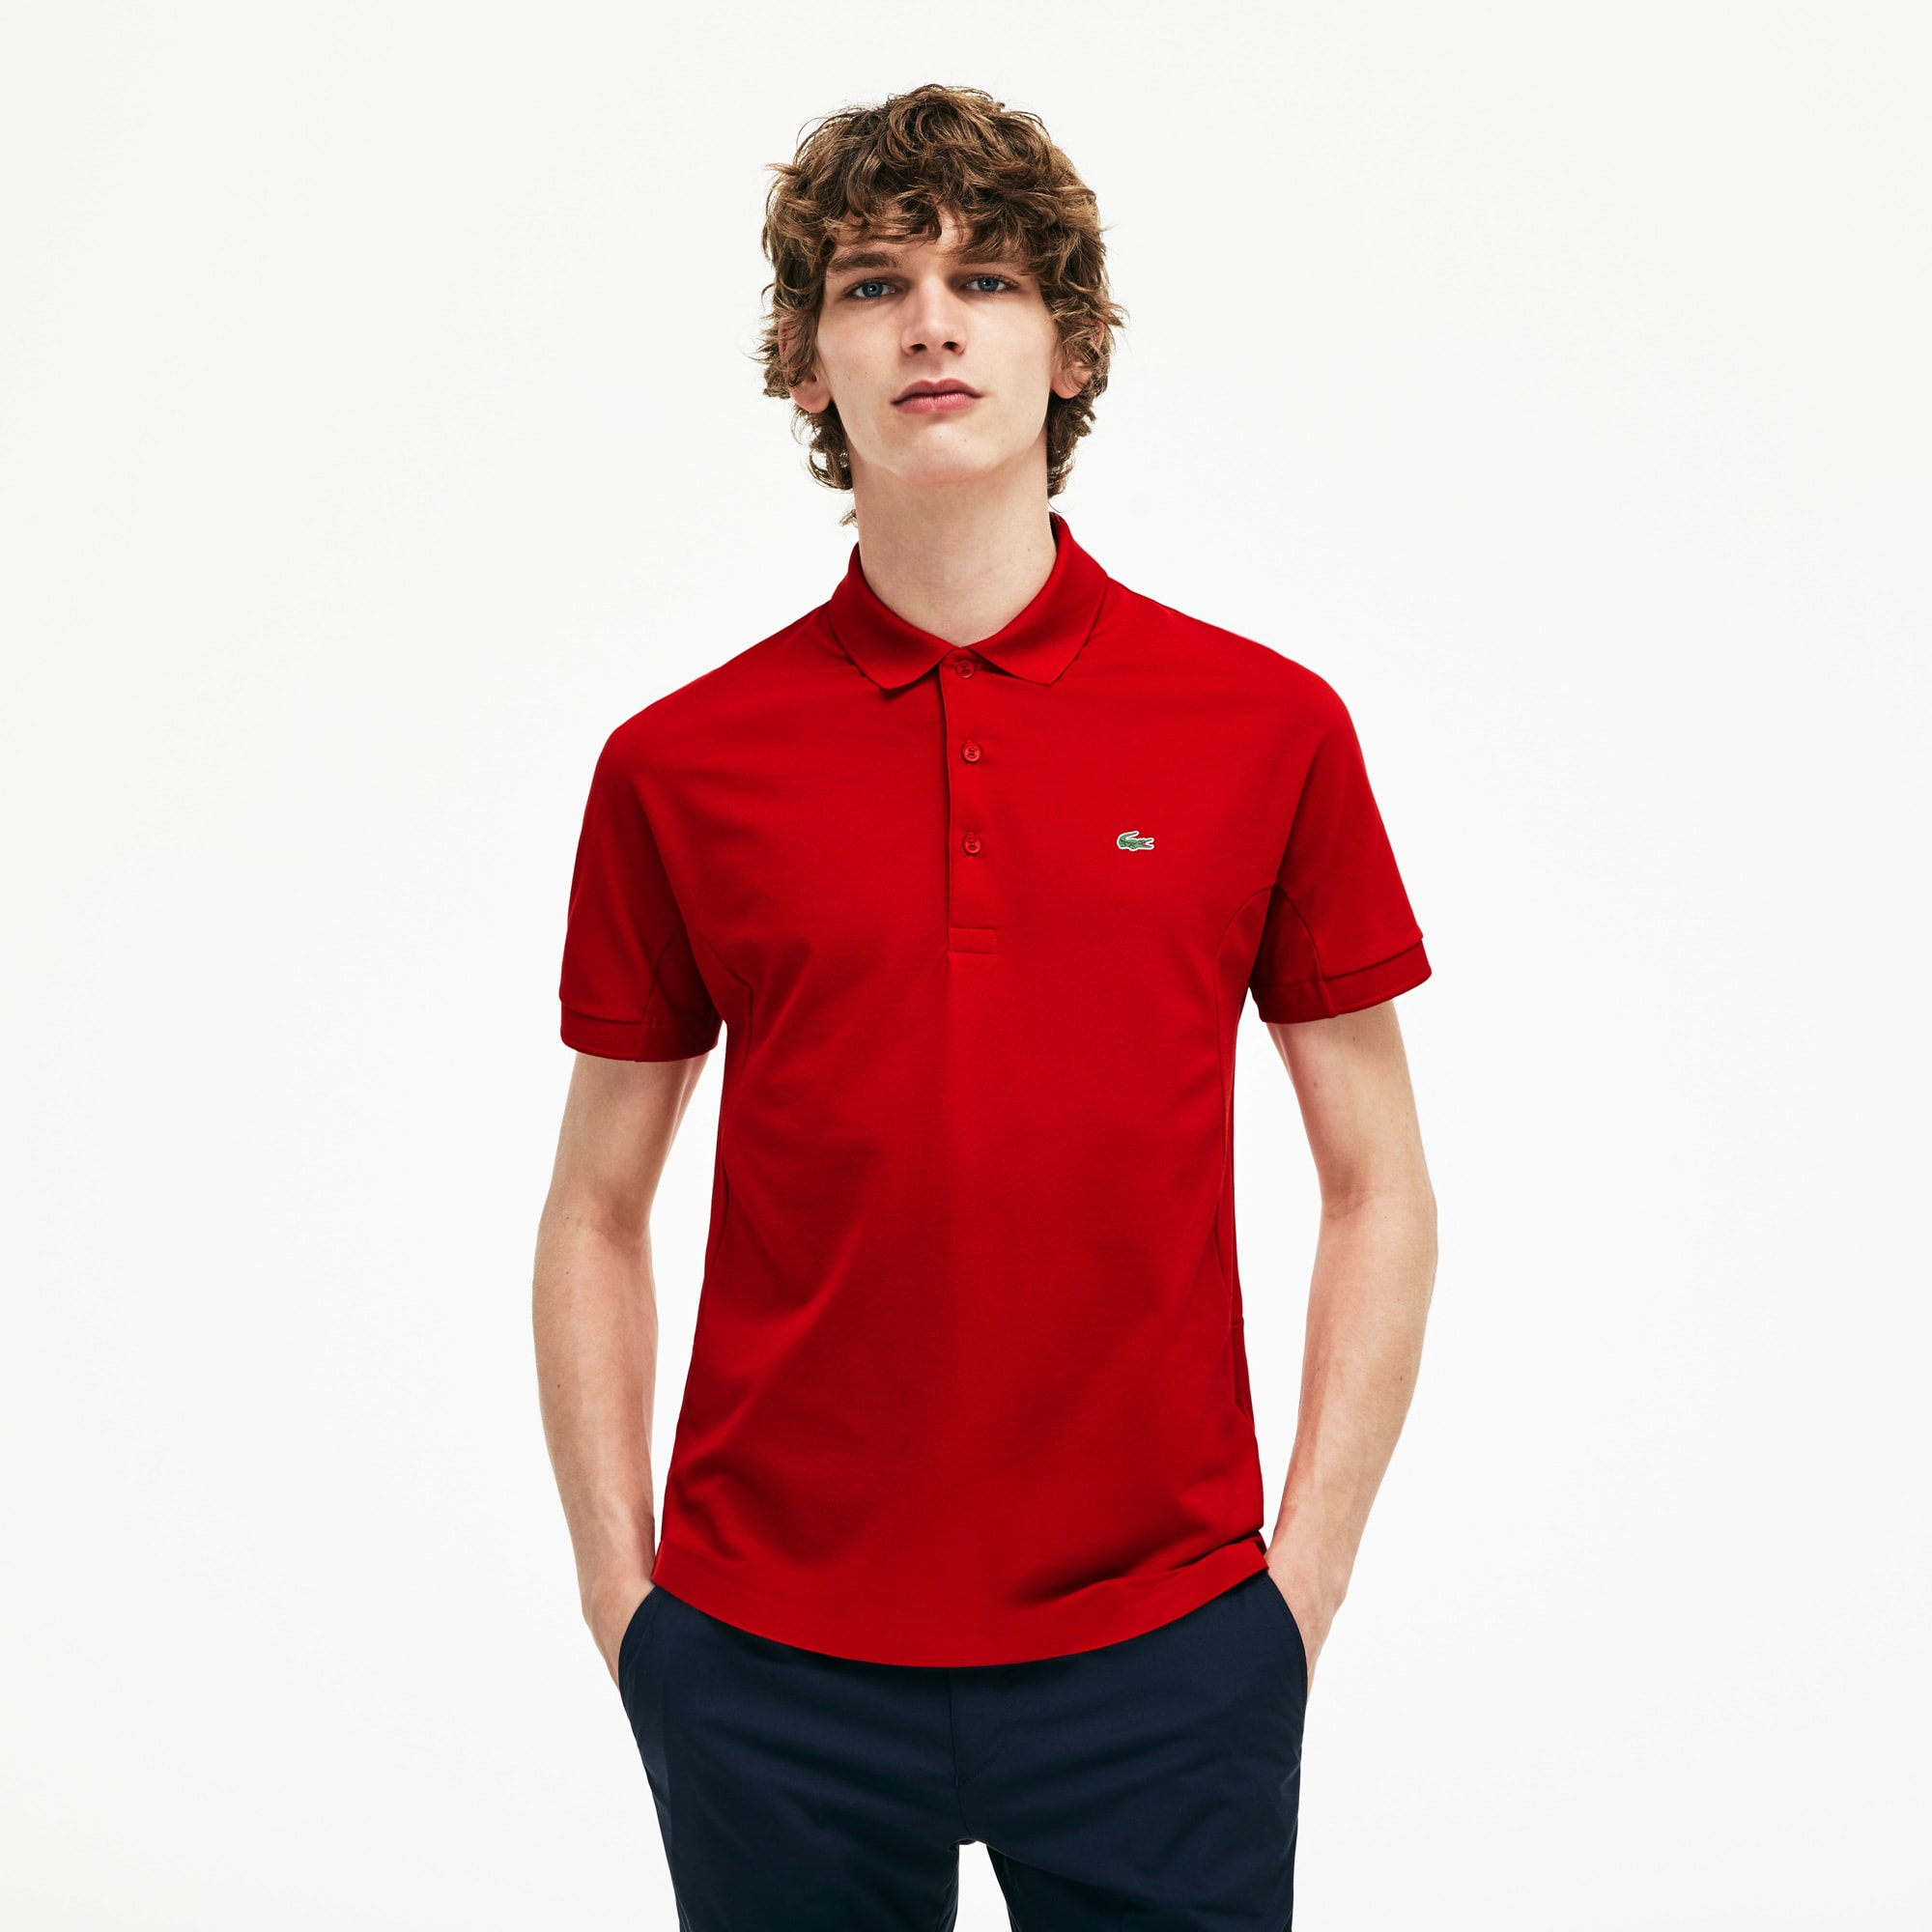 a7ec7454a22f73 Regular fit Lacoste polo, piqué, limited edition 85-jarig jubileum ...